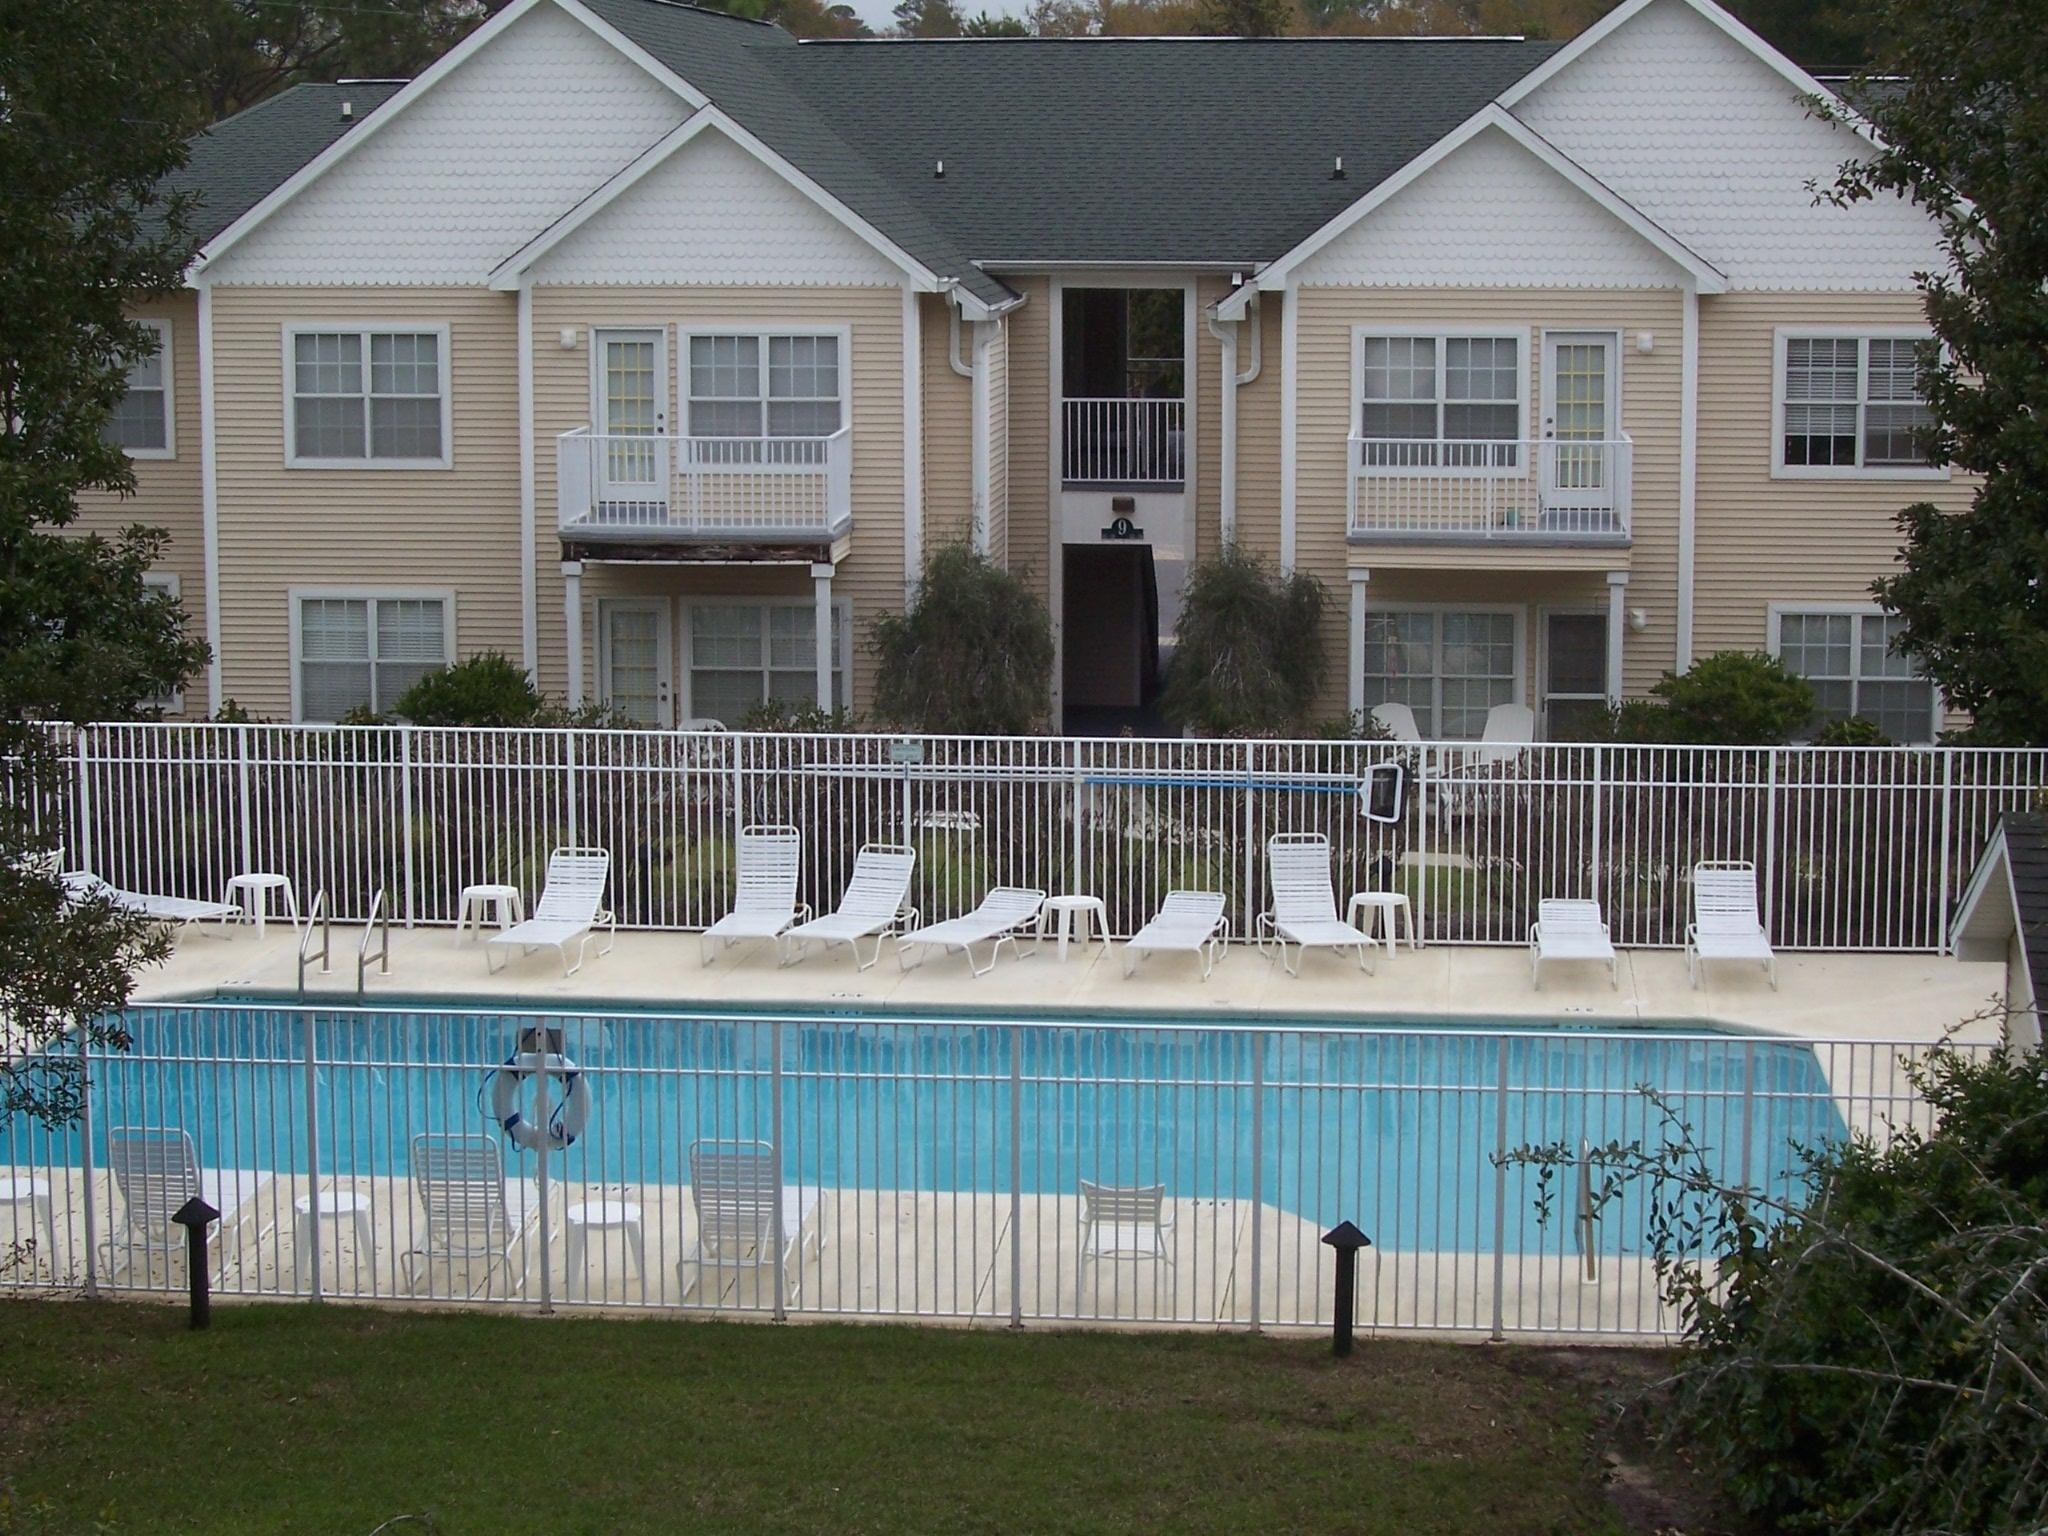 View of community pool